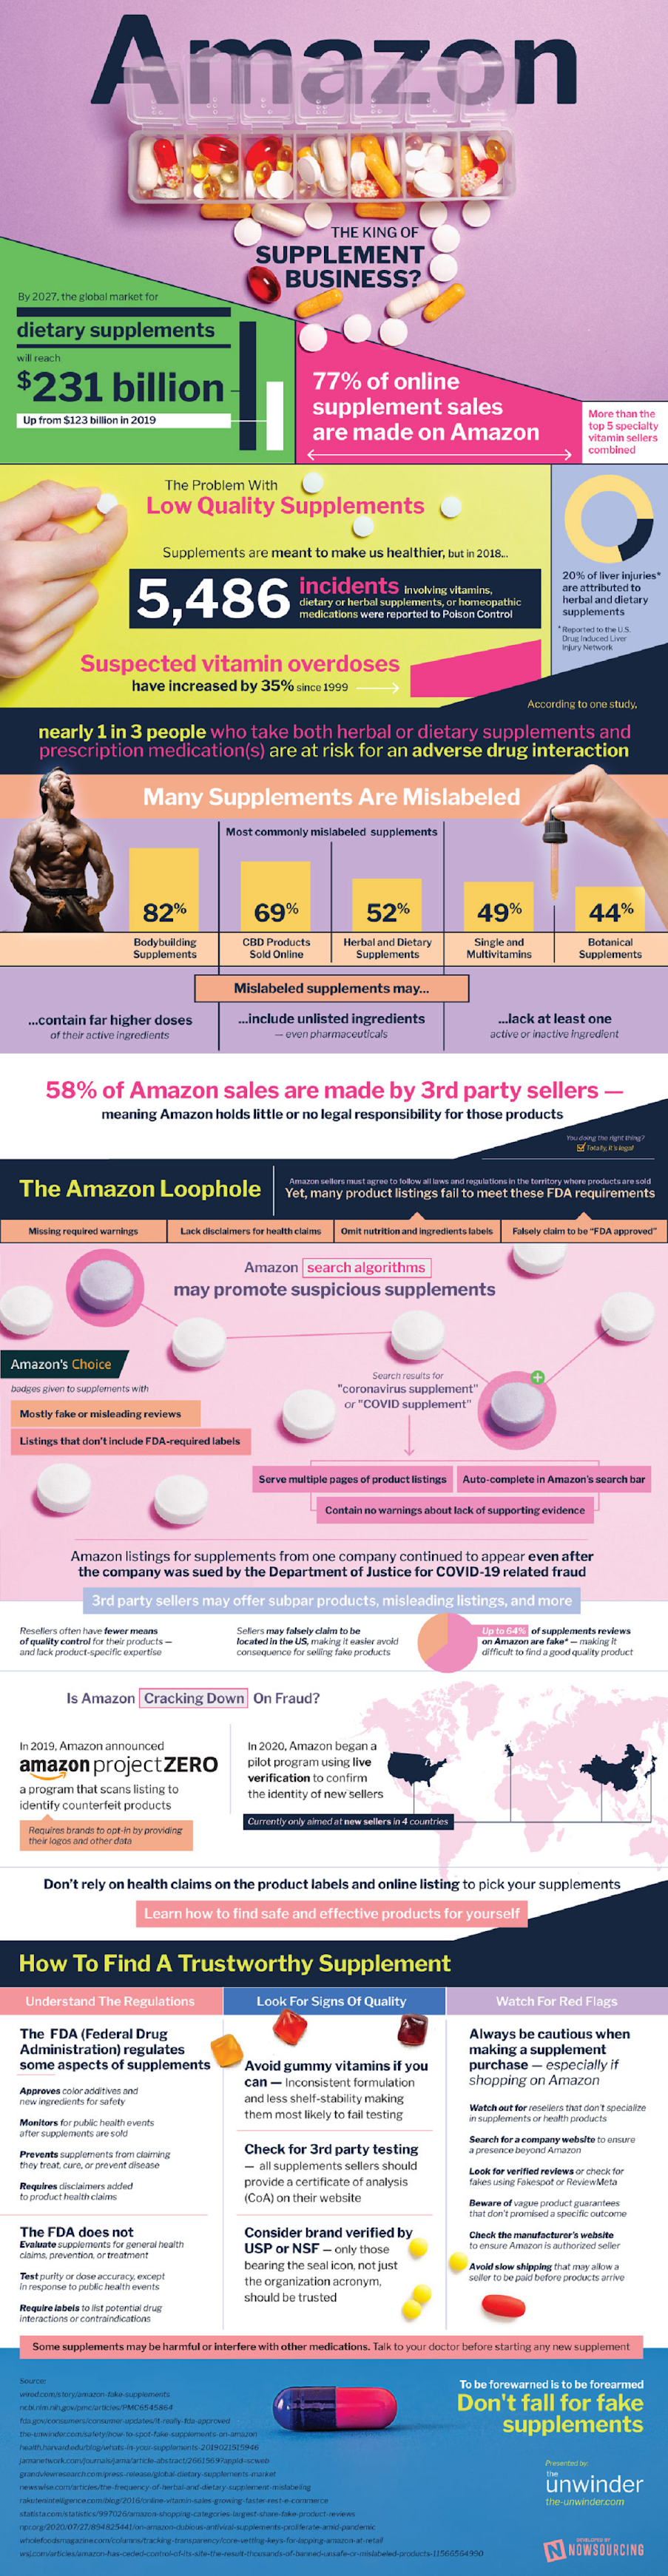 Amazon: King Of The Supplements Business? #infographic